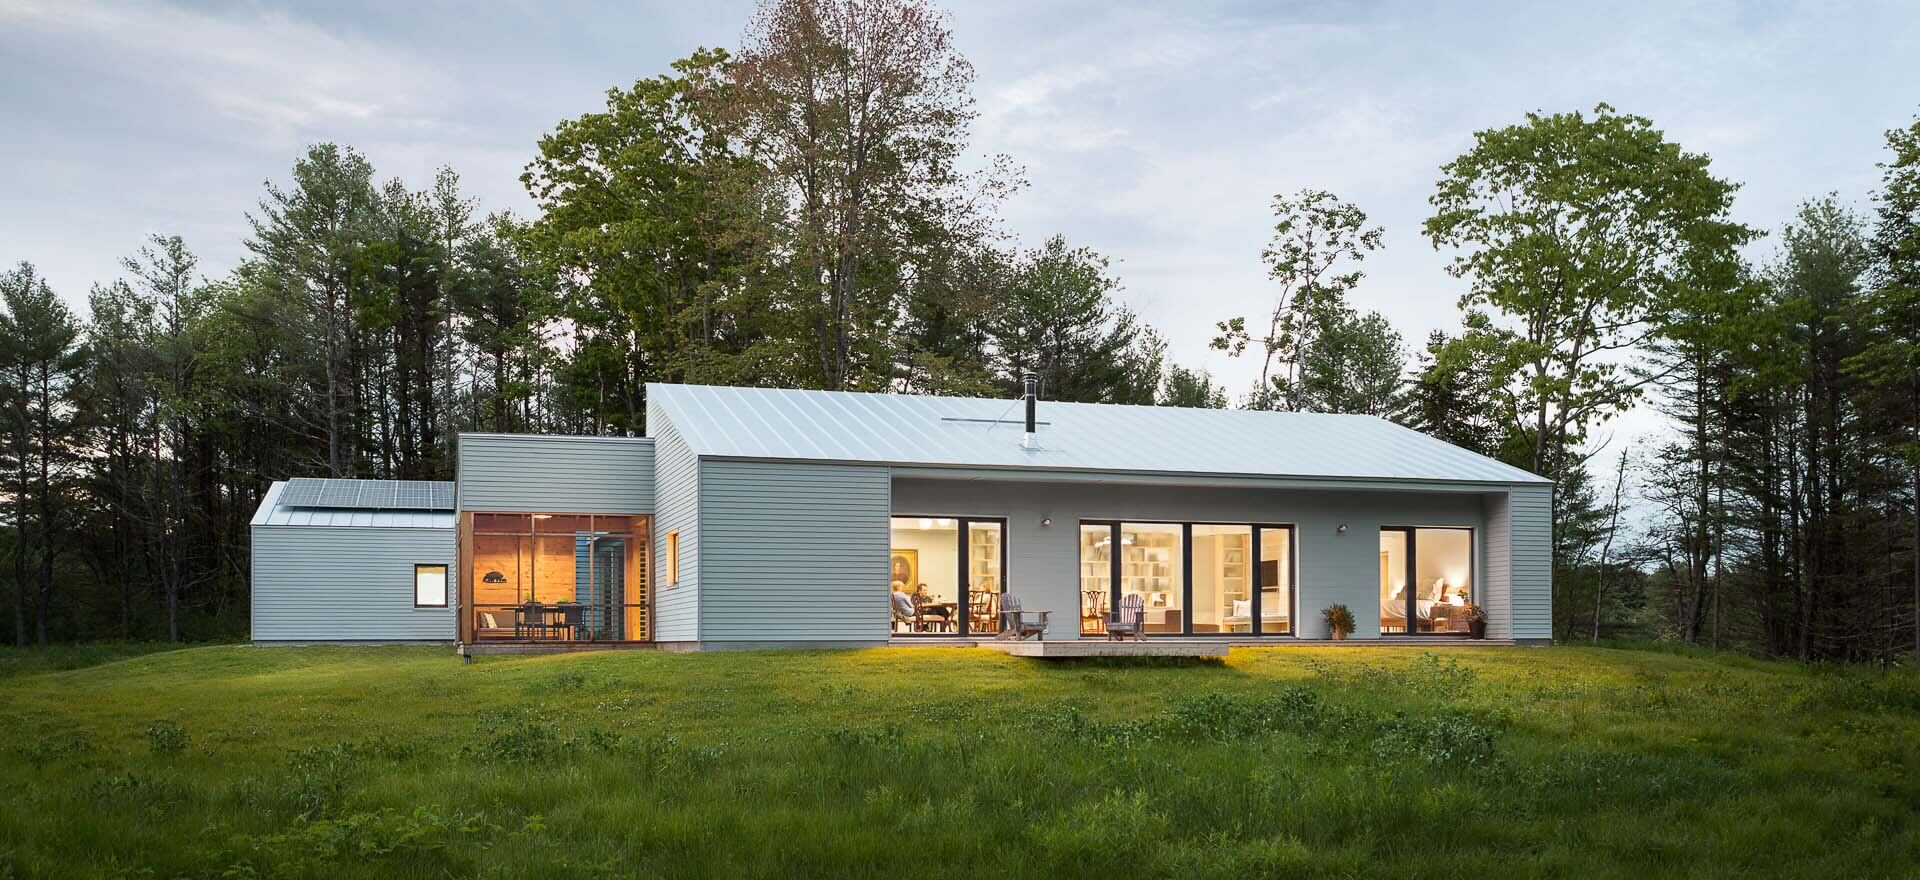 Enjoyable Modular Homes And Prefab Homes Companies In Connecticut Home Interior And Landscaping Ologienasavecom